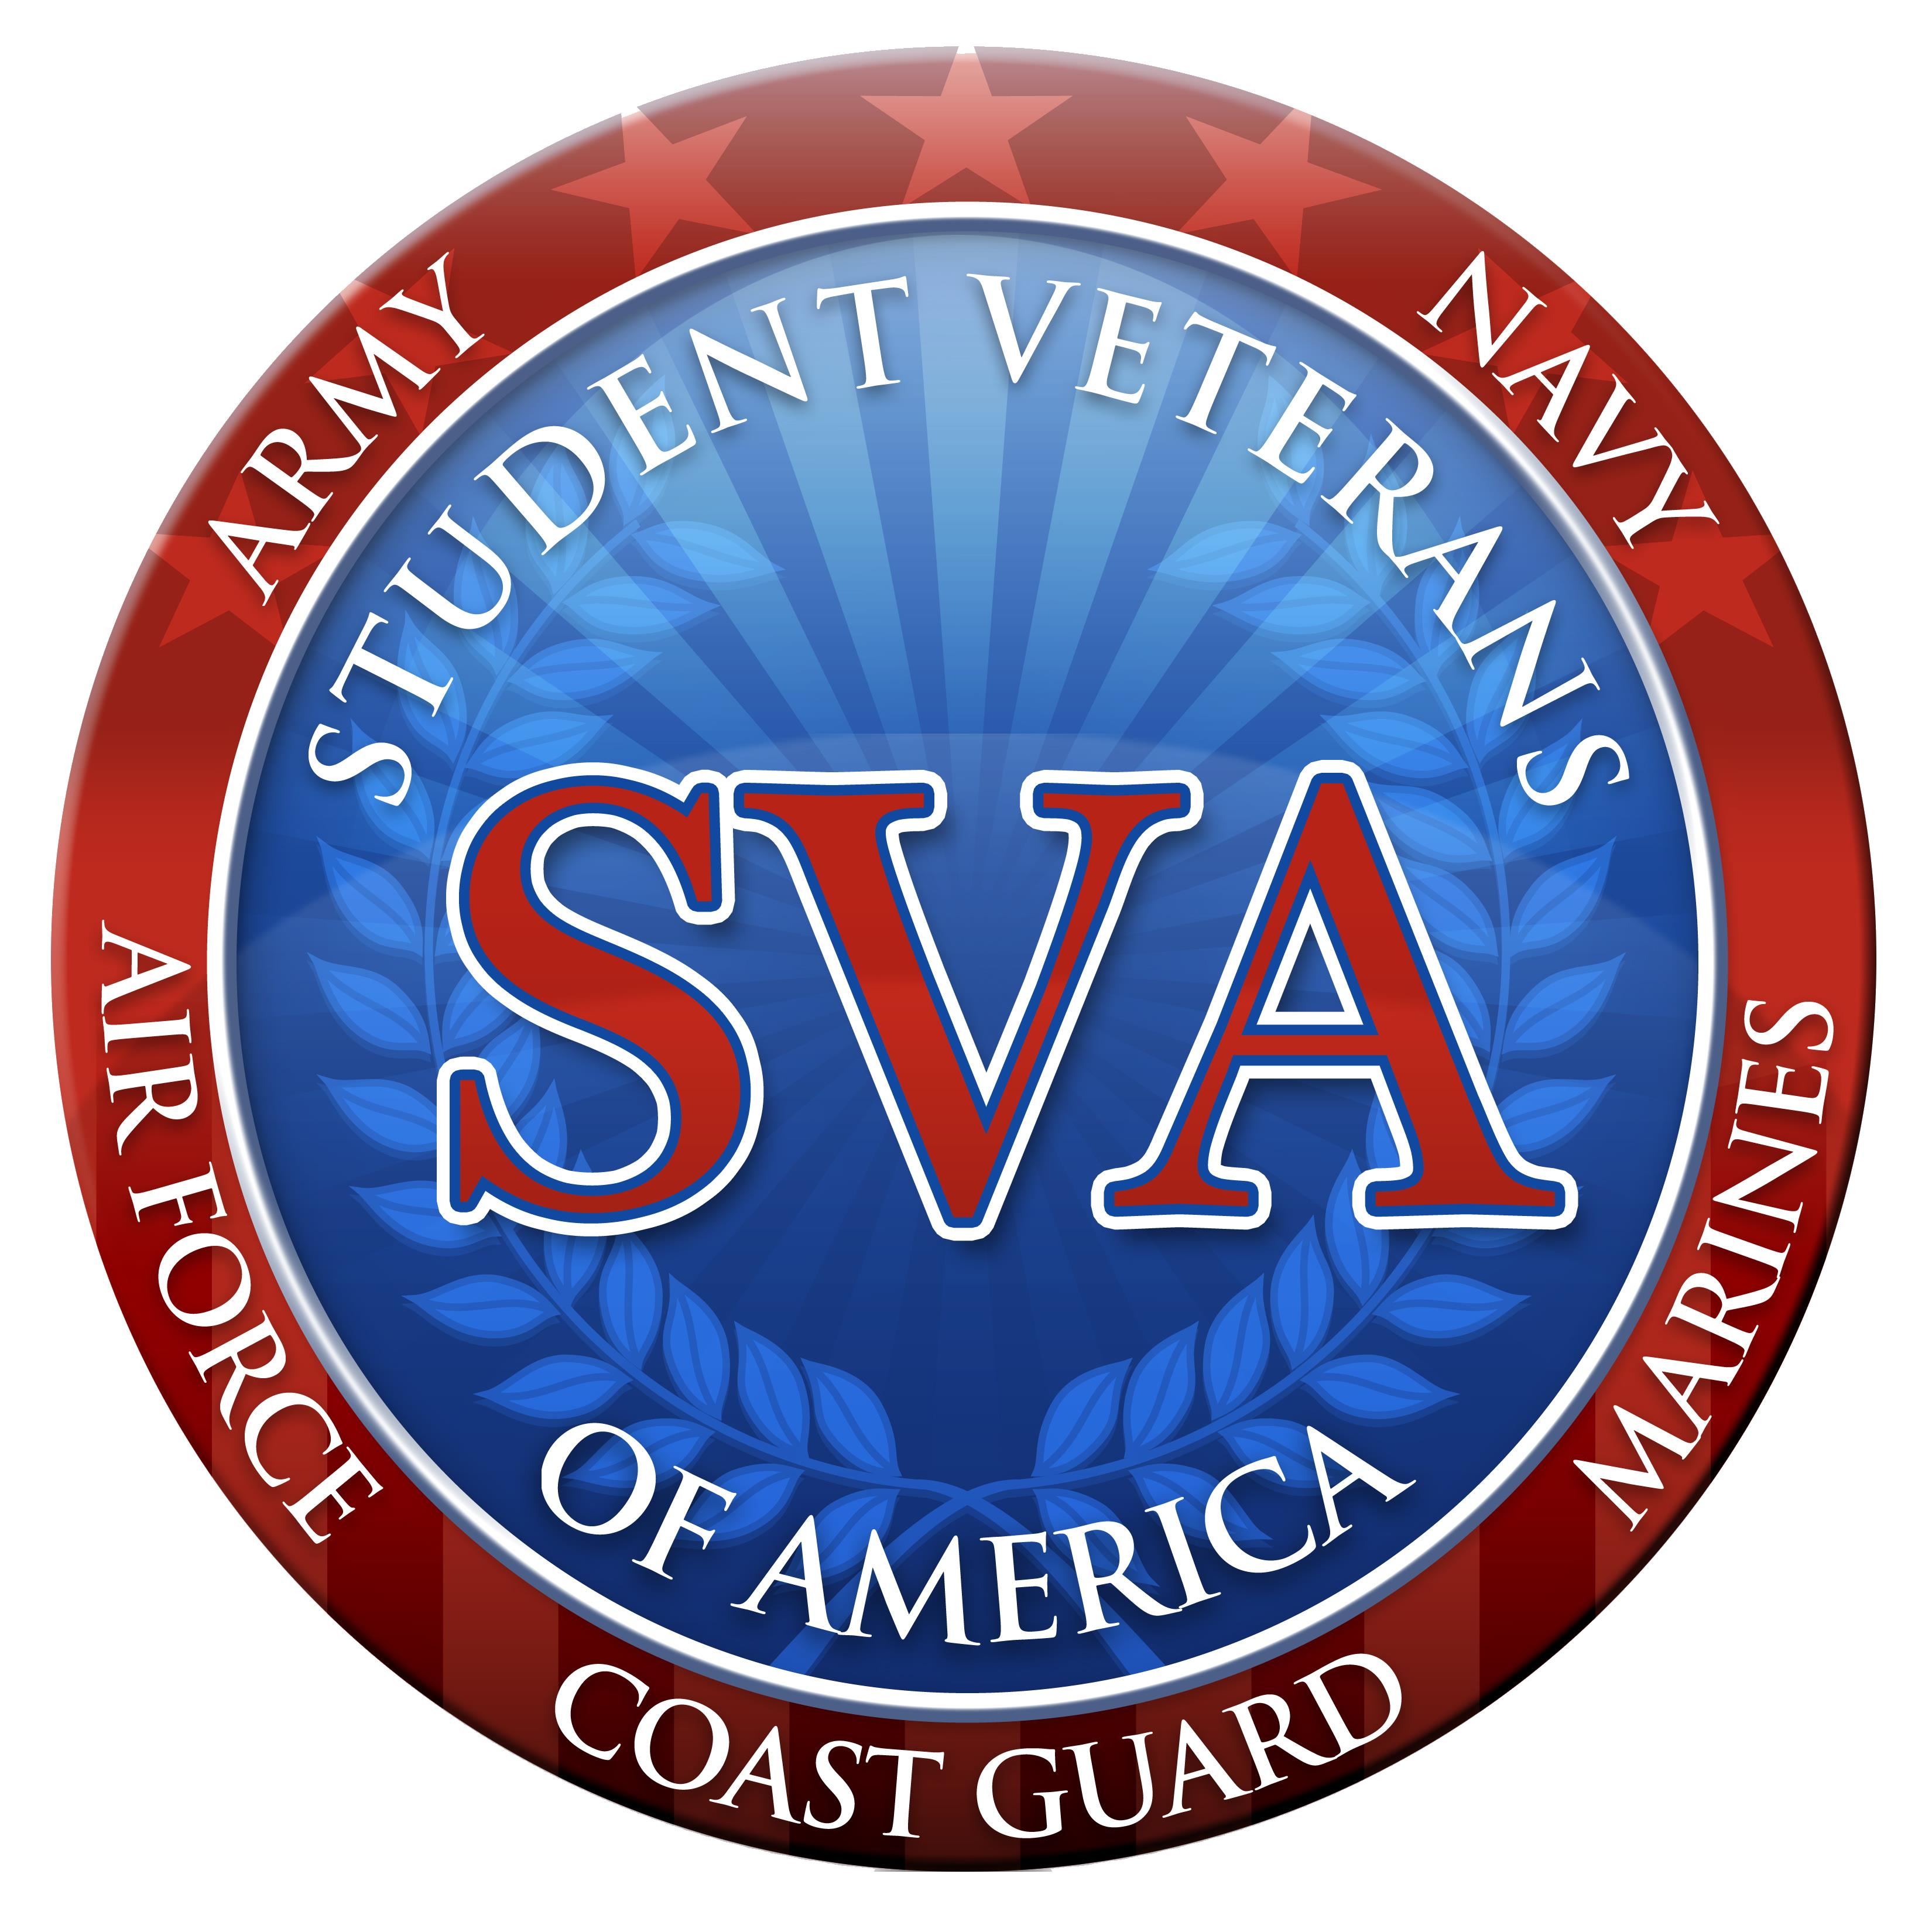 student veteran Students planning to attend los angeles harbor college under one of the veterans educational benefits programs must report to the veterans office, located in ssa 114.